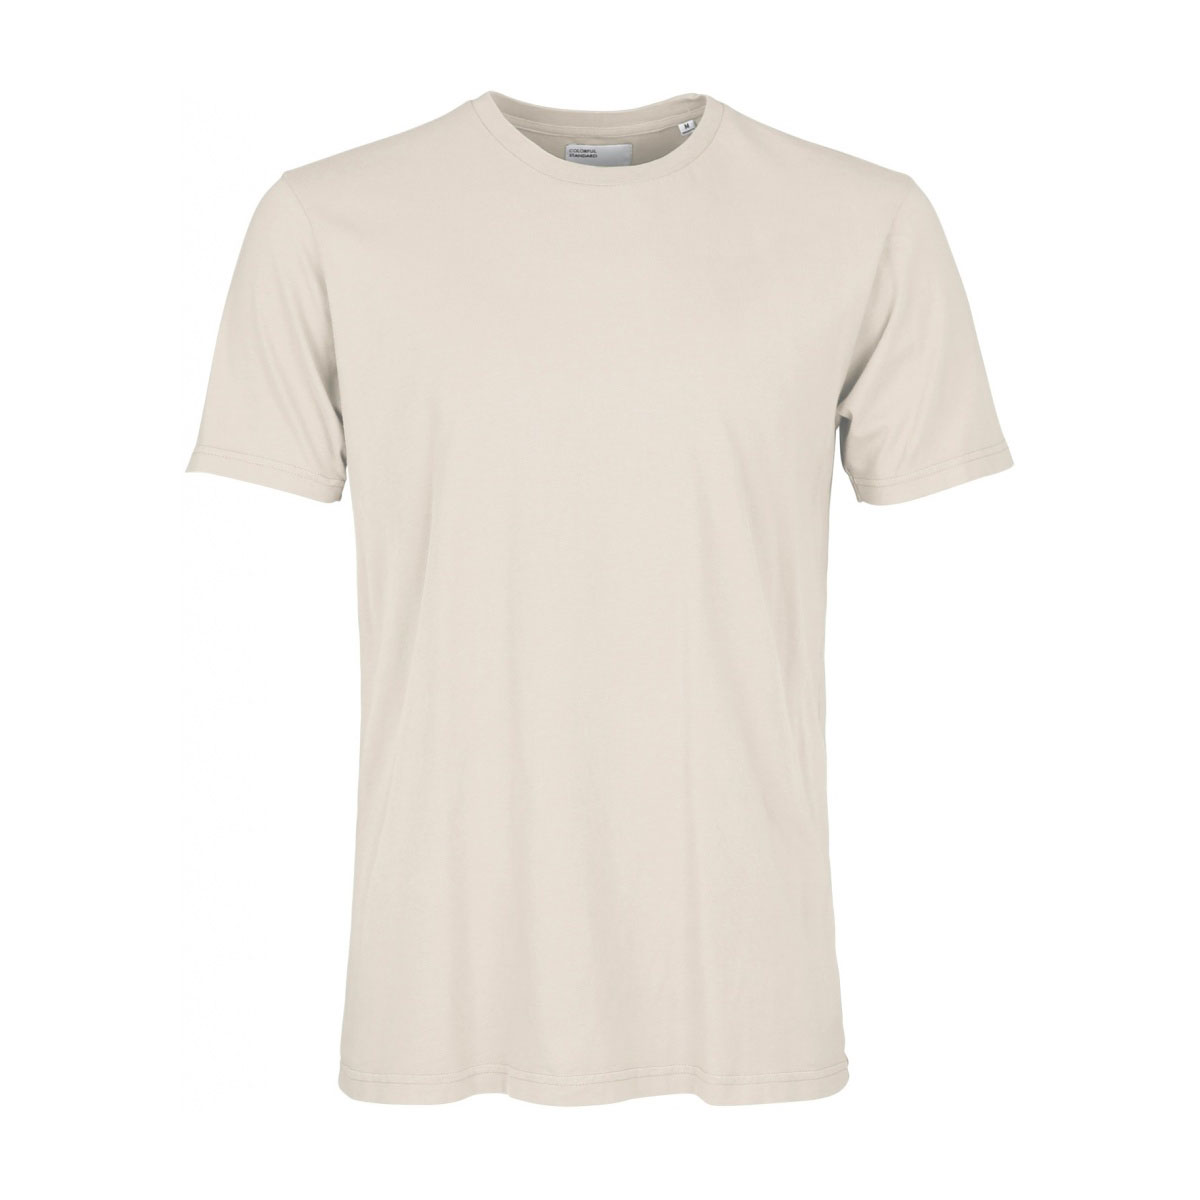 COLORFUL STANDARD Classic Organic Tee Ivory White